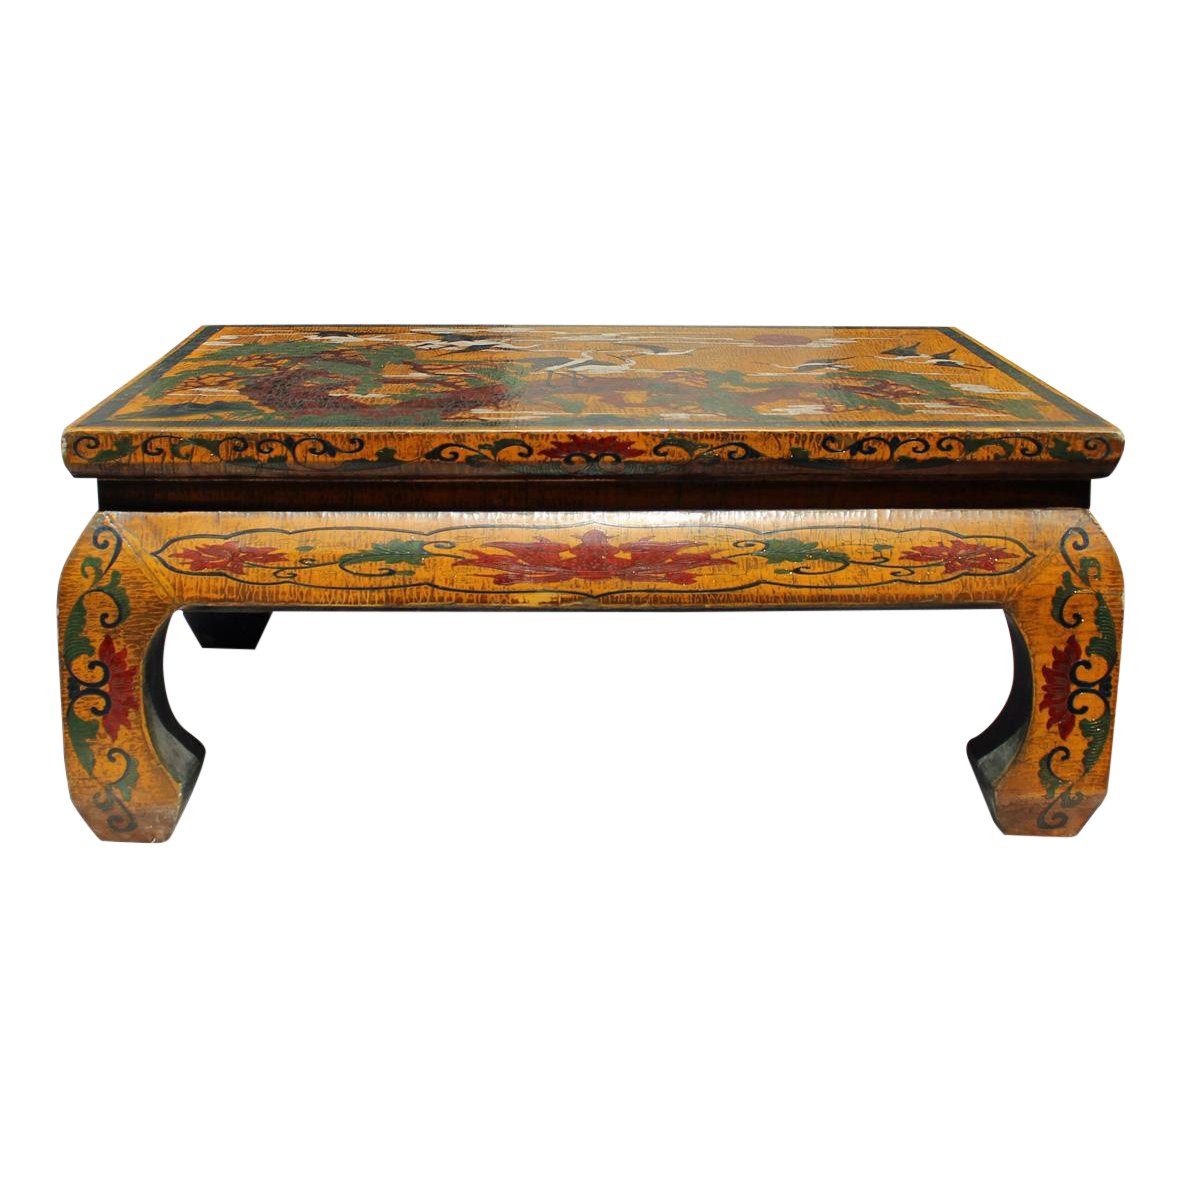 chinese tibetan yellow lacquer cranes pine table stand chairish drum accent sofa bench ikea west elm beds dog bath tub futon covers and beyond metal reducer strip barn wood